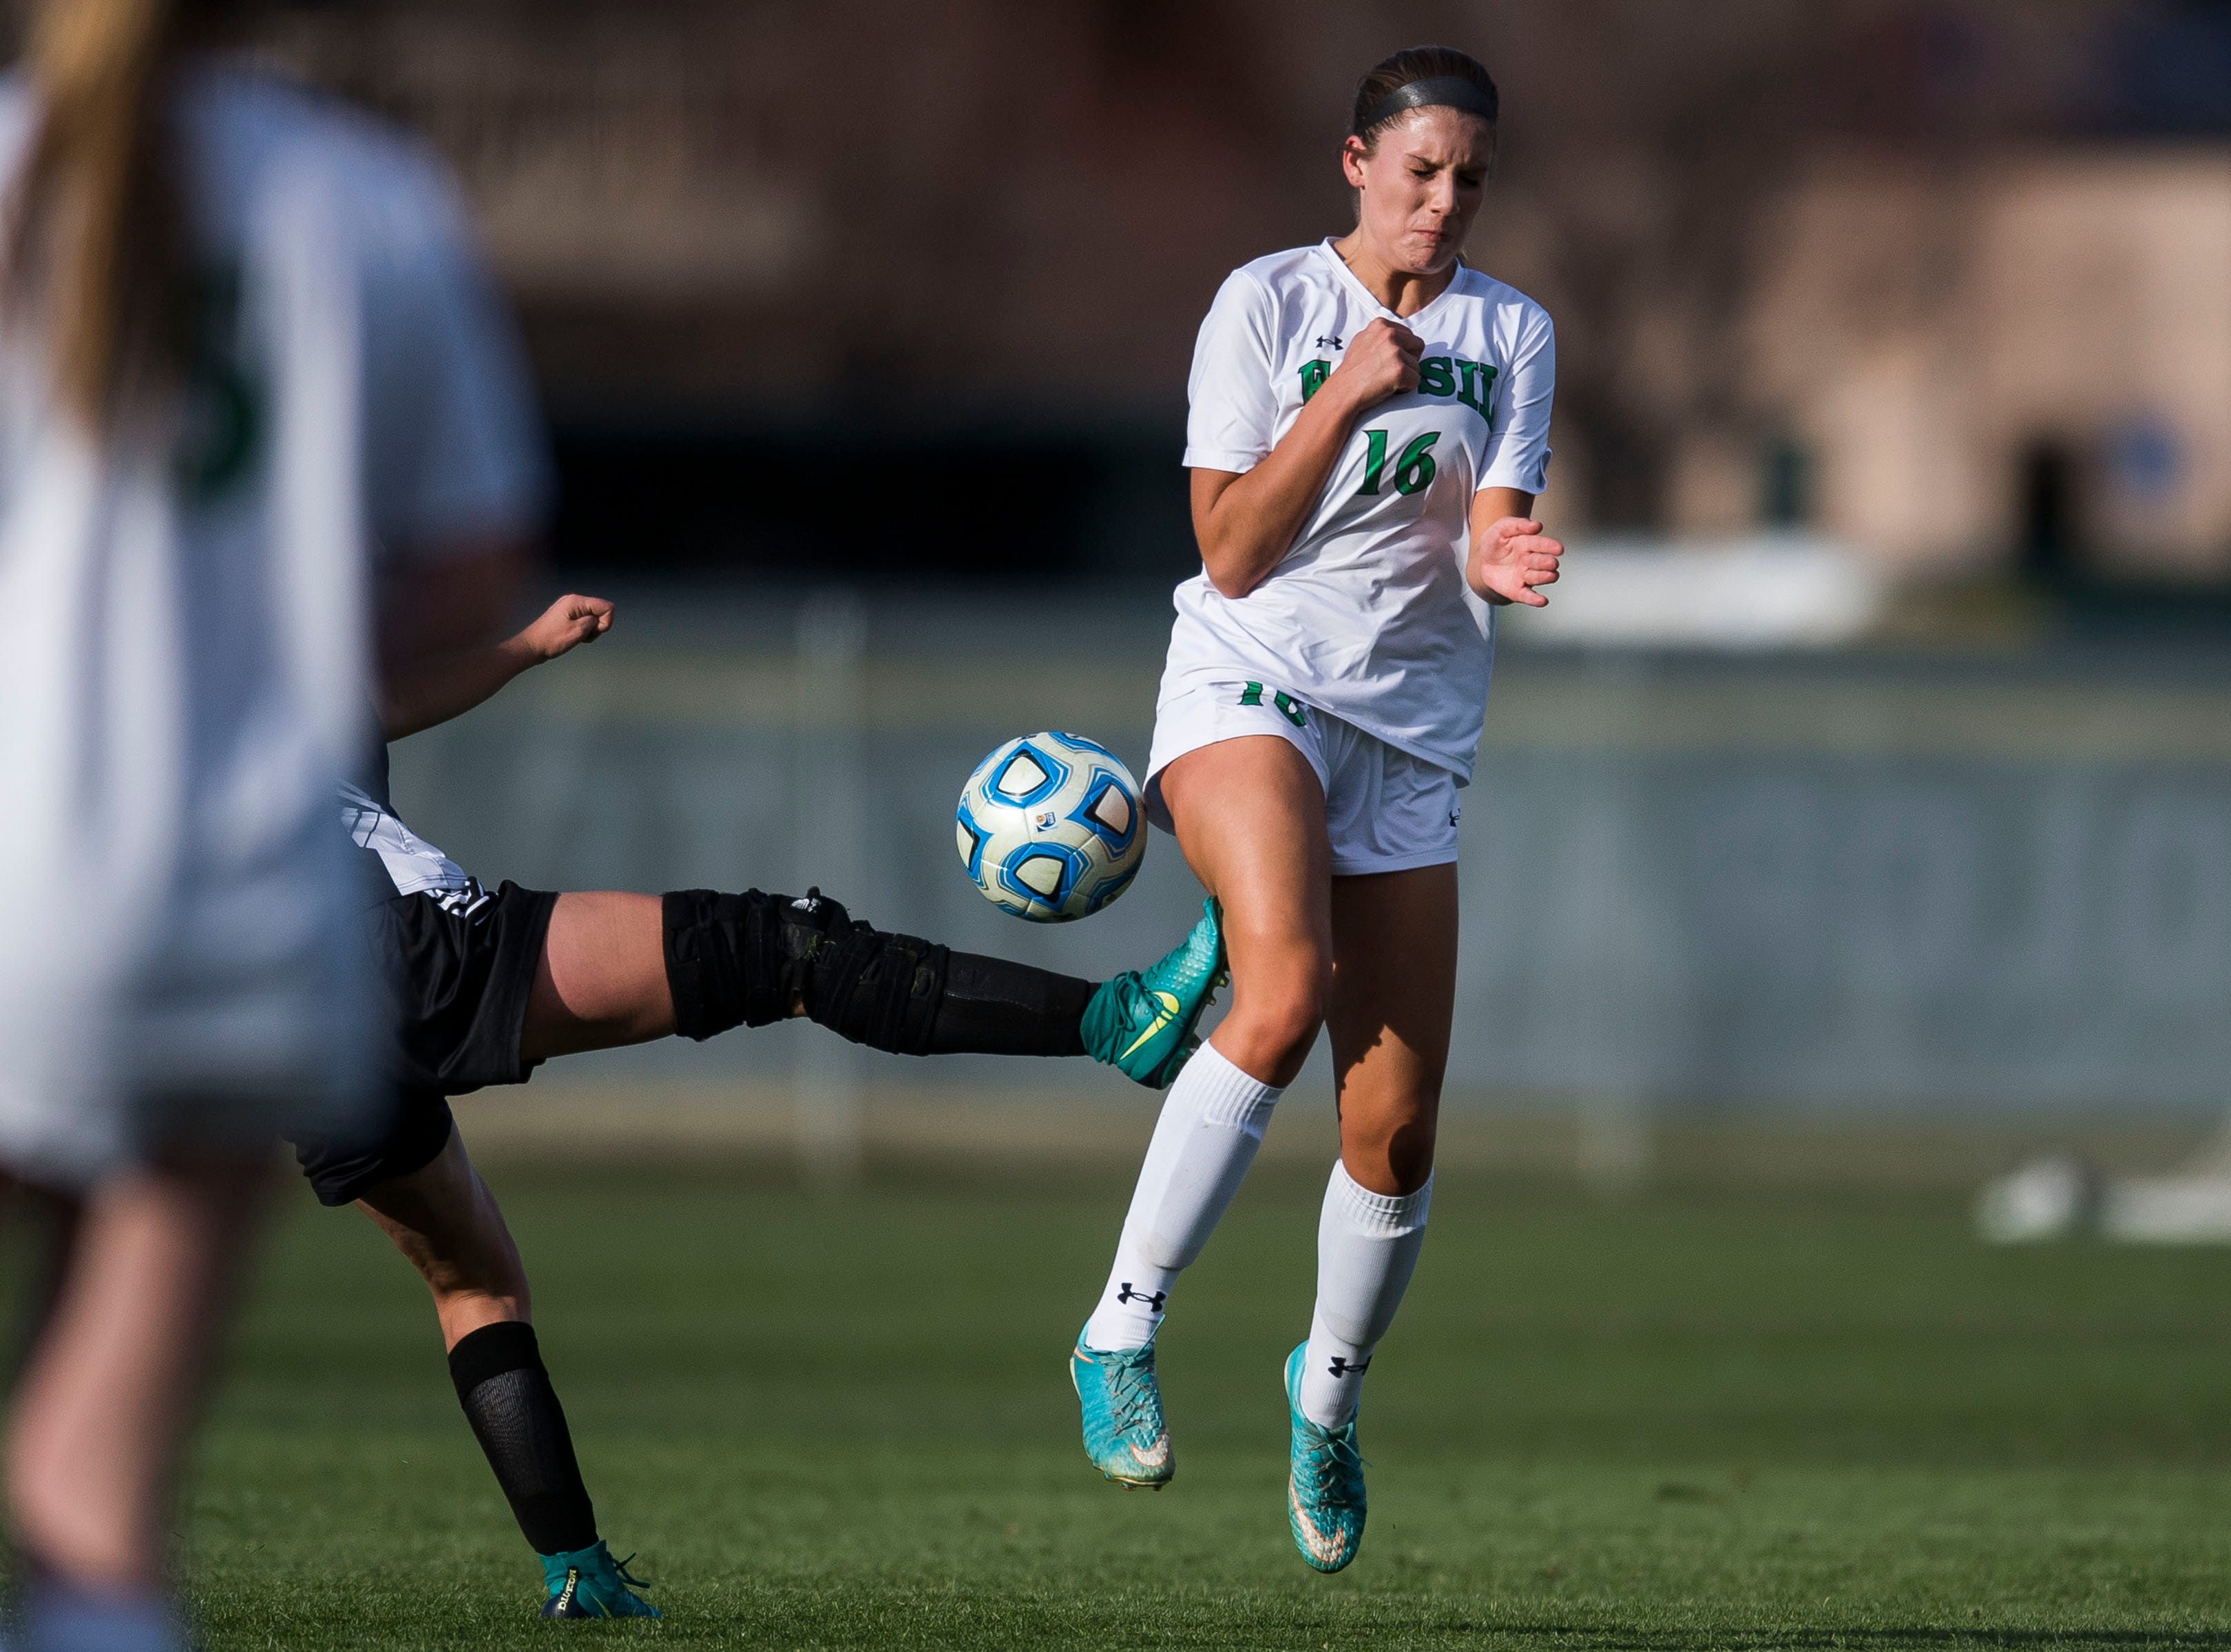 Fossil Ridge High School senior Lauren Martis (16) takes kick while blocking a shot during a game against Rocky Mountain High School on Friday, April 4, 2019, at Colorado State University's soccer field in Fort Collins, Colo.